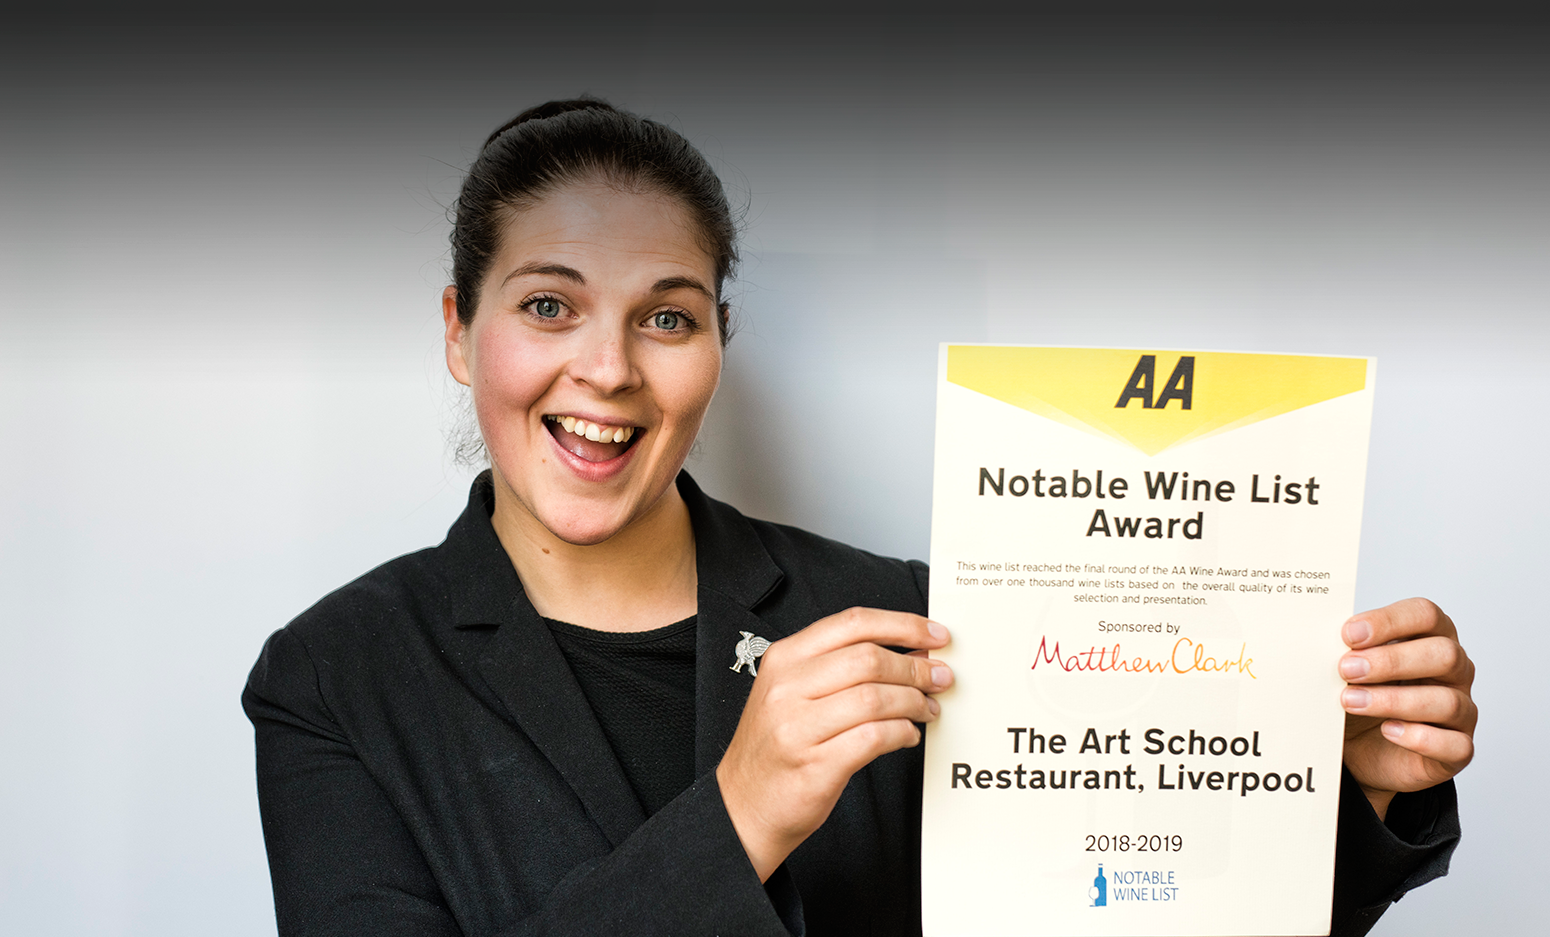 sarah Head sommelier The Art School Notable Wine List AA Award Rosette